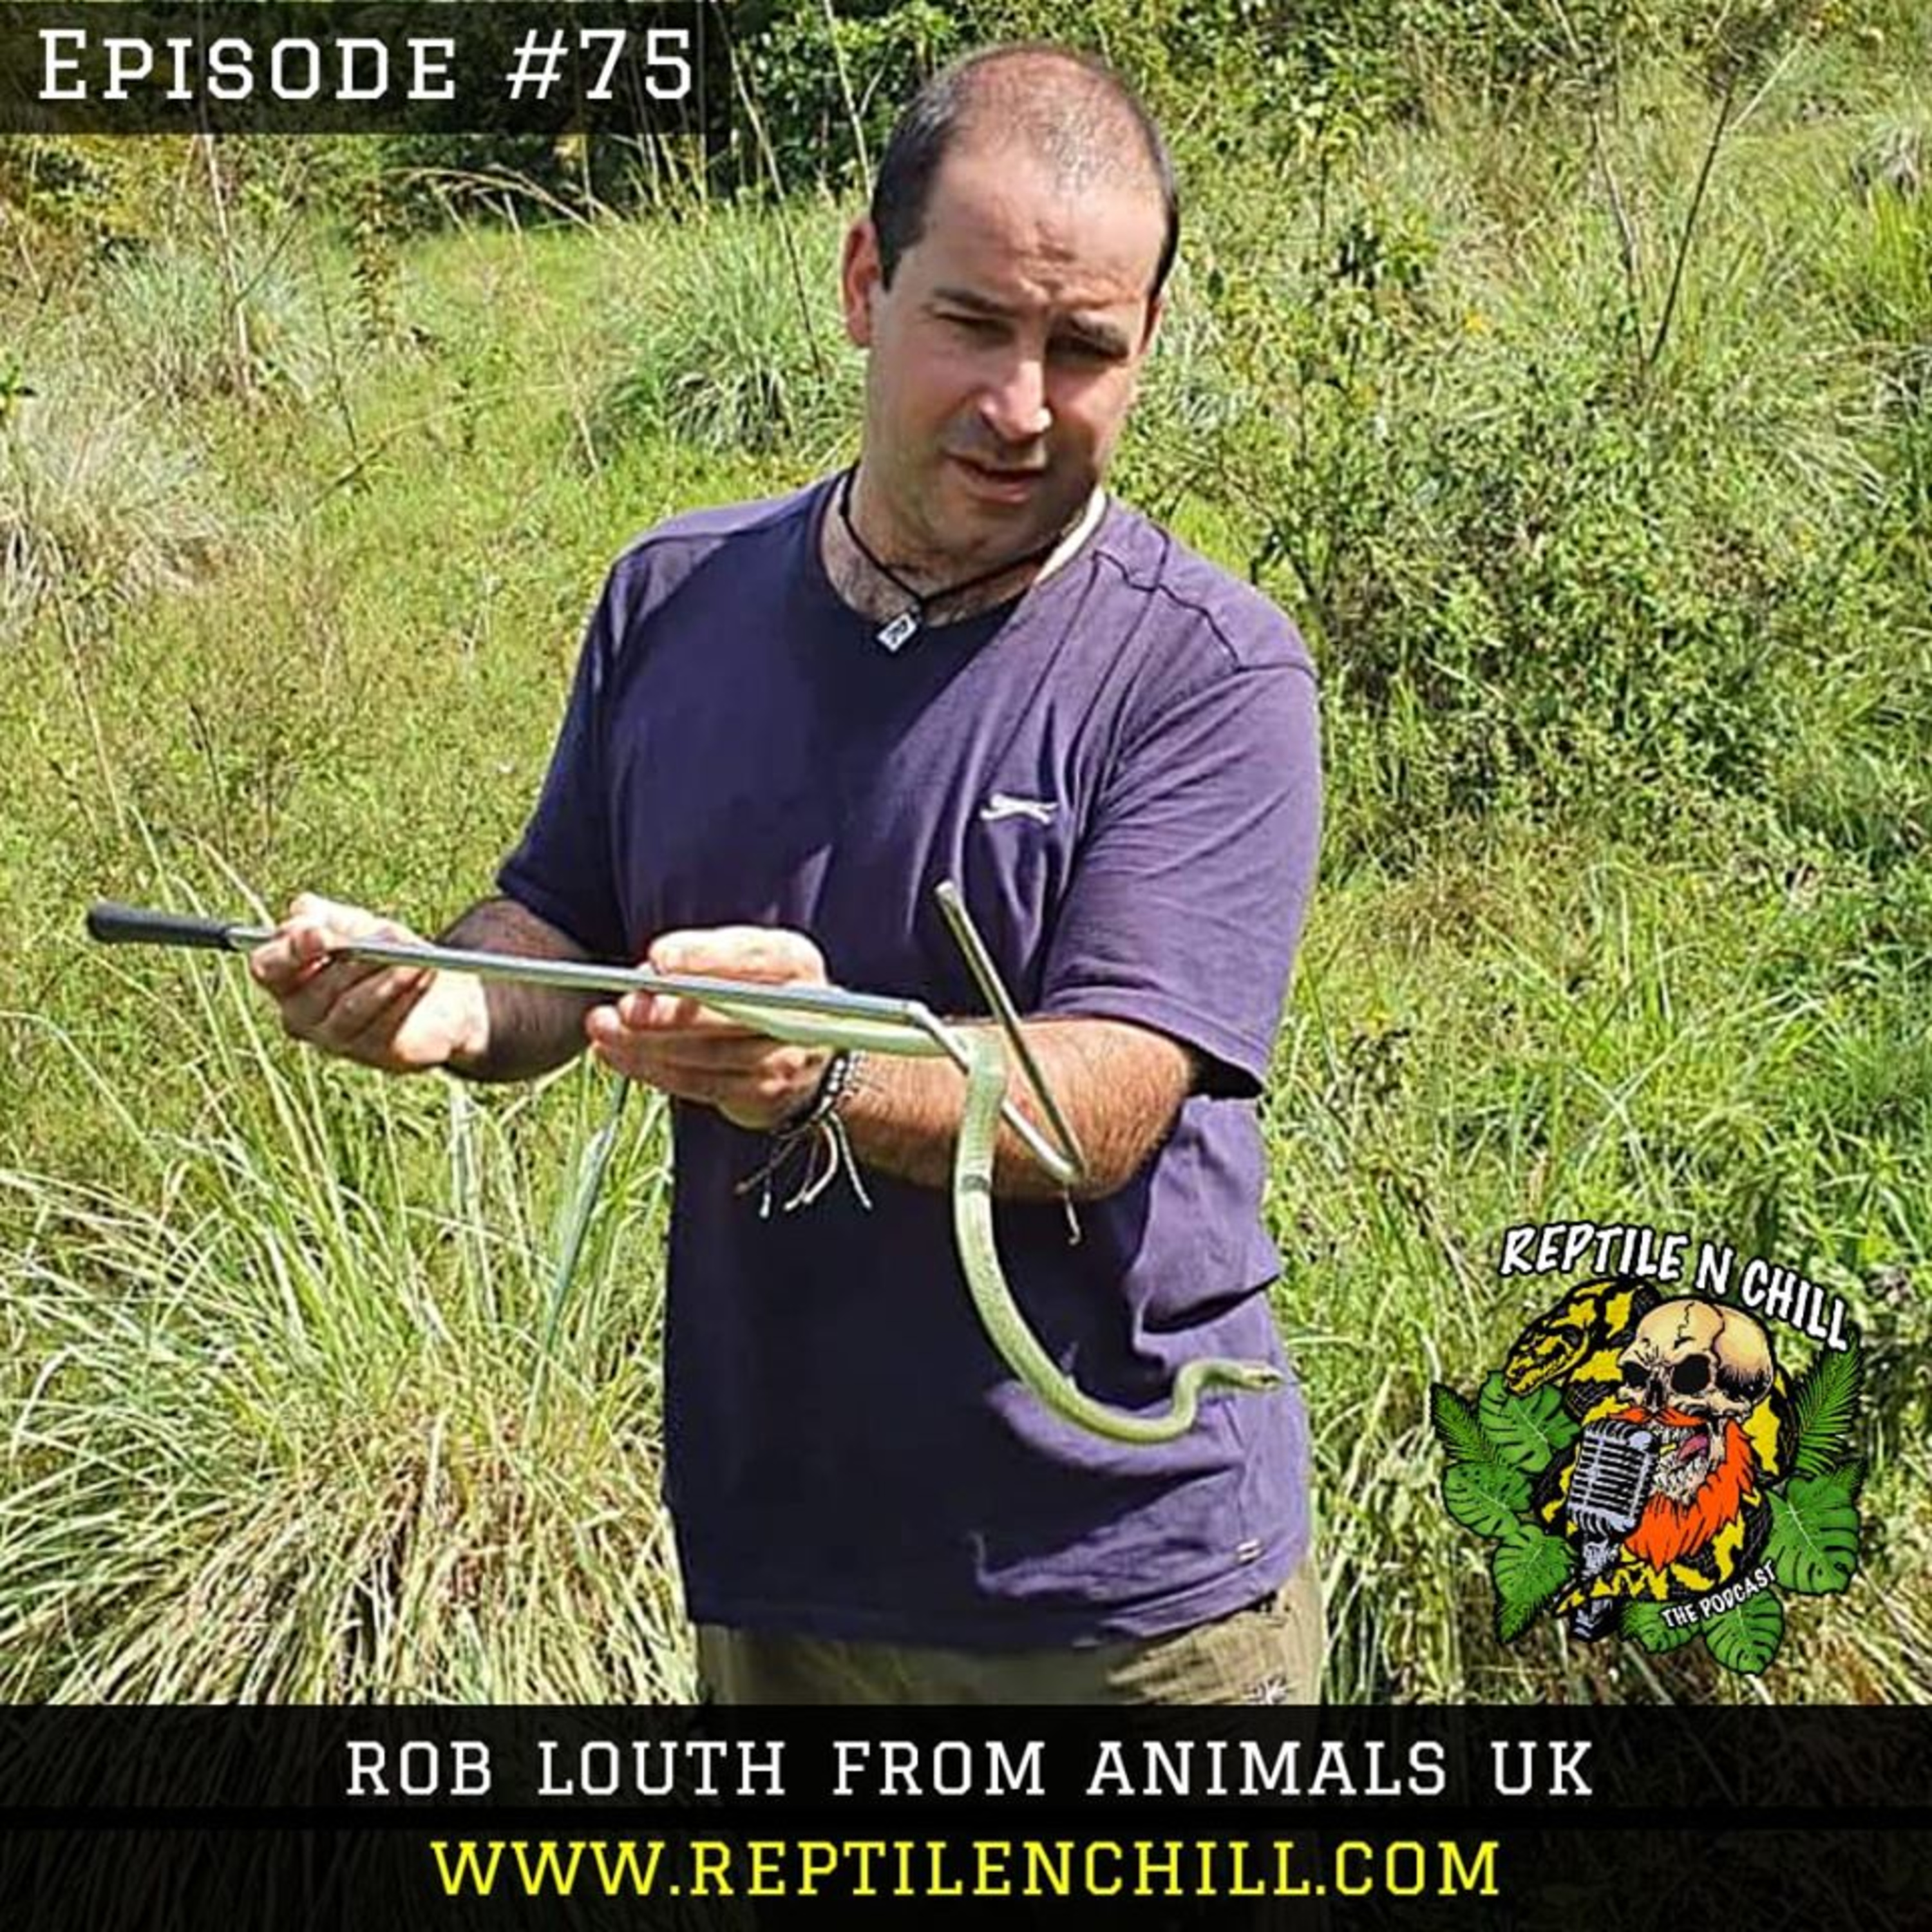 Mental health & Animal Encounters with Rob Louth. - 75 Reptile n Chill